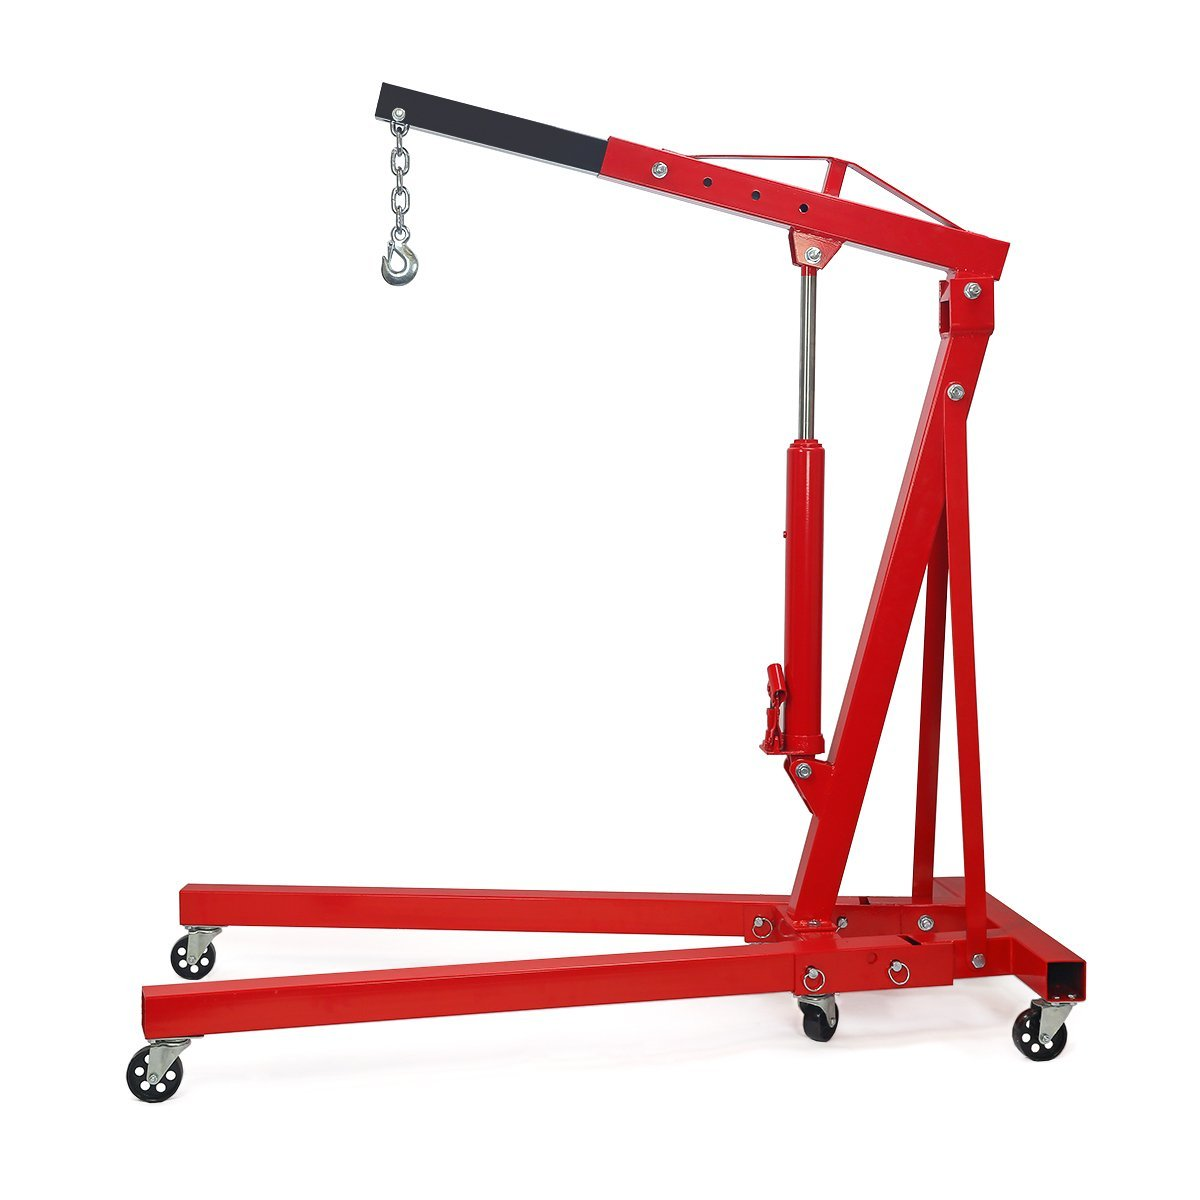 Hydraulic Cherry Picker Hydraulic Cherry Picker For Wall